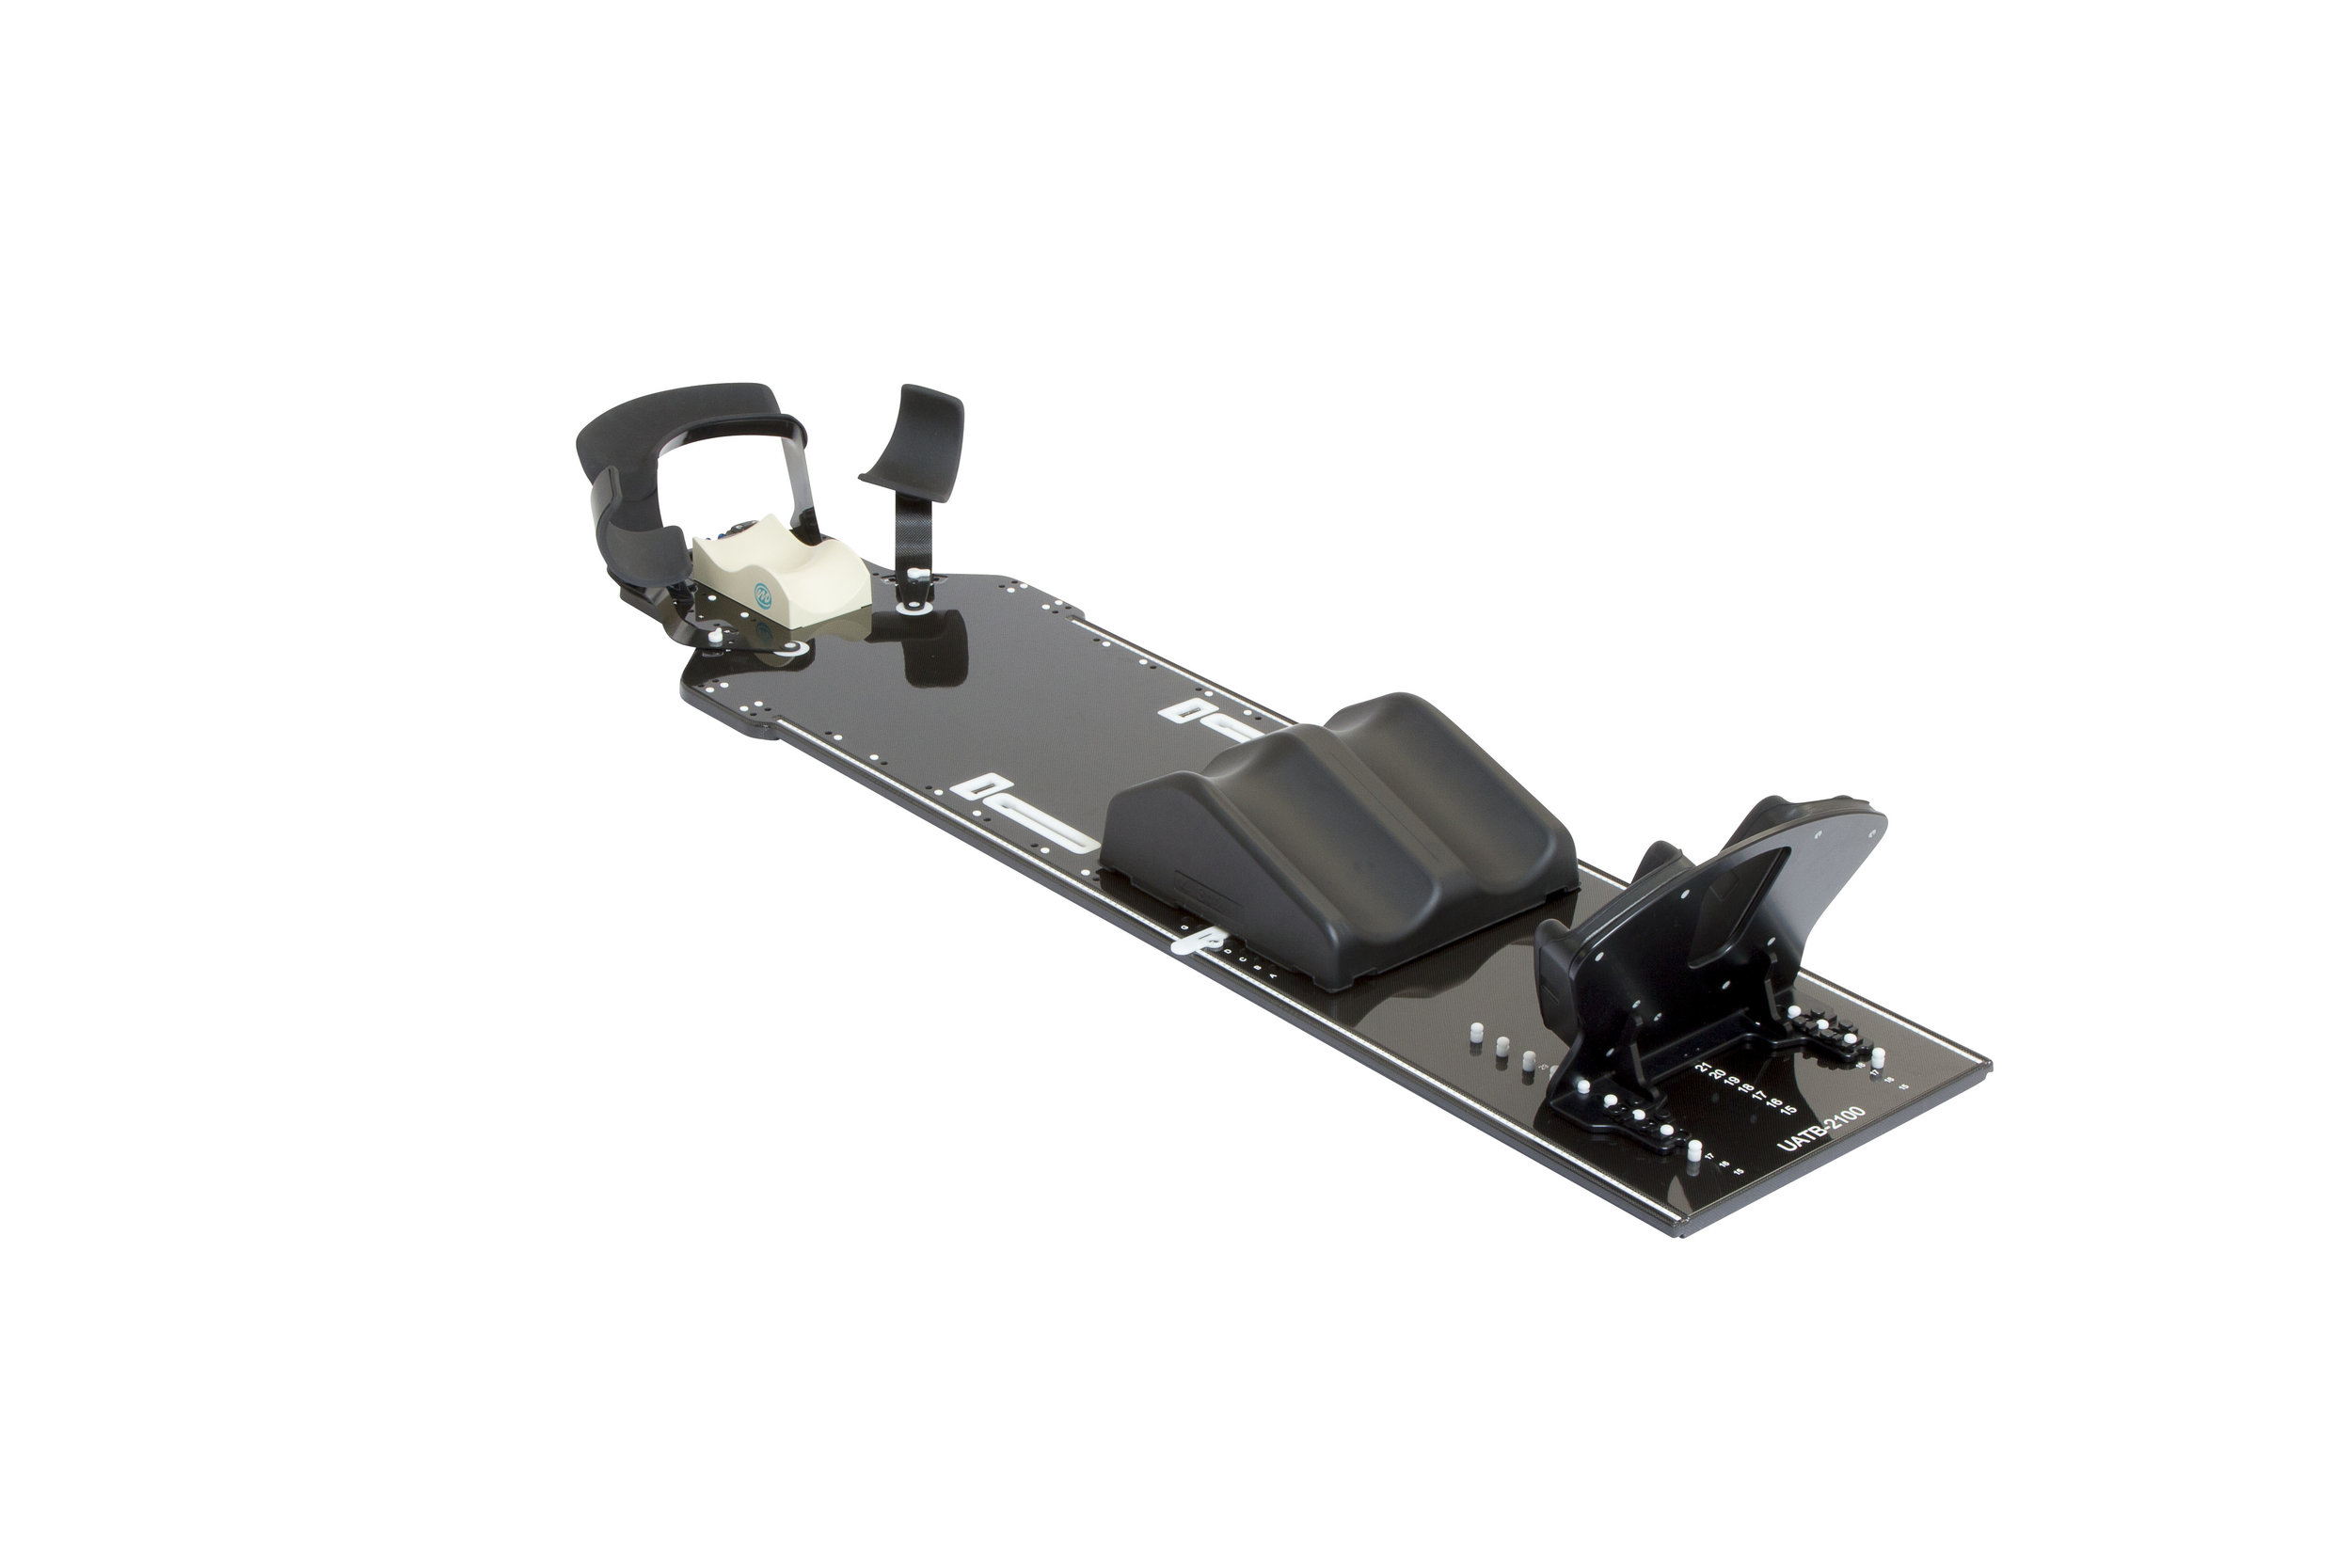 Eliminates the need for a dedicated wing board or thorax board.